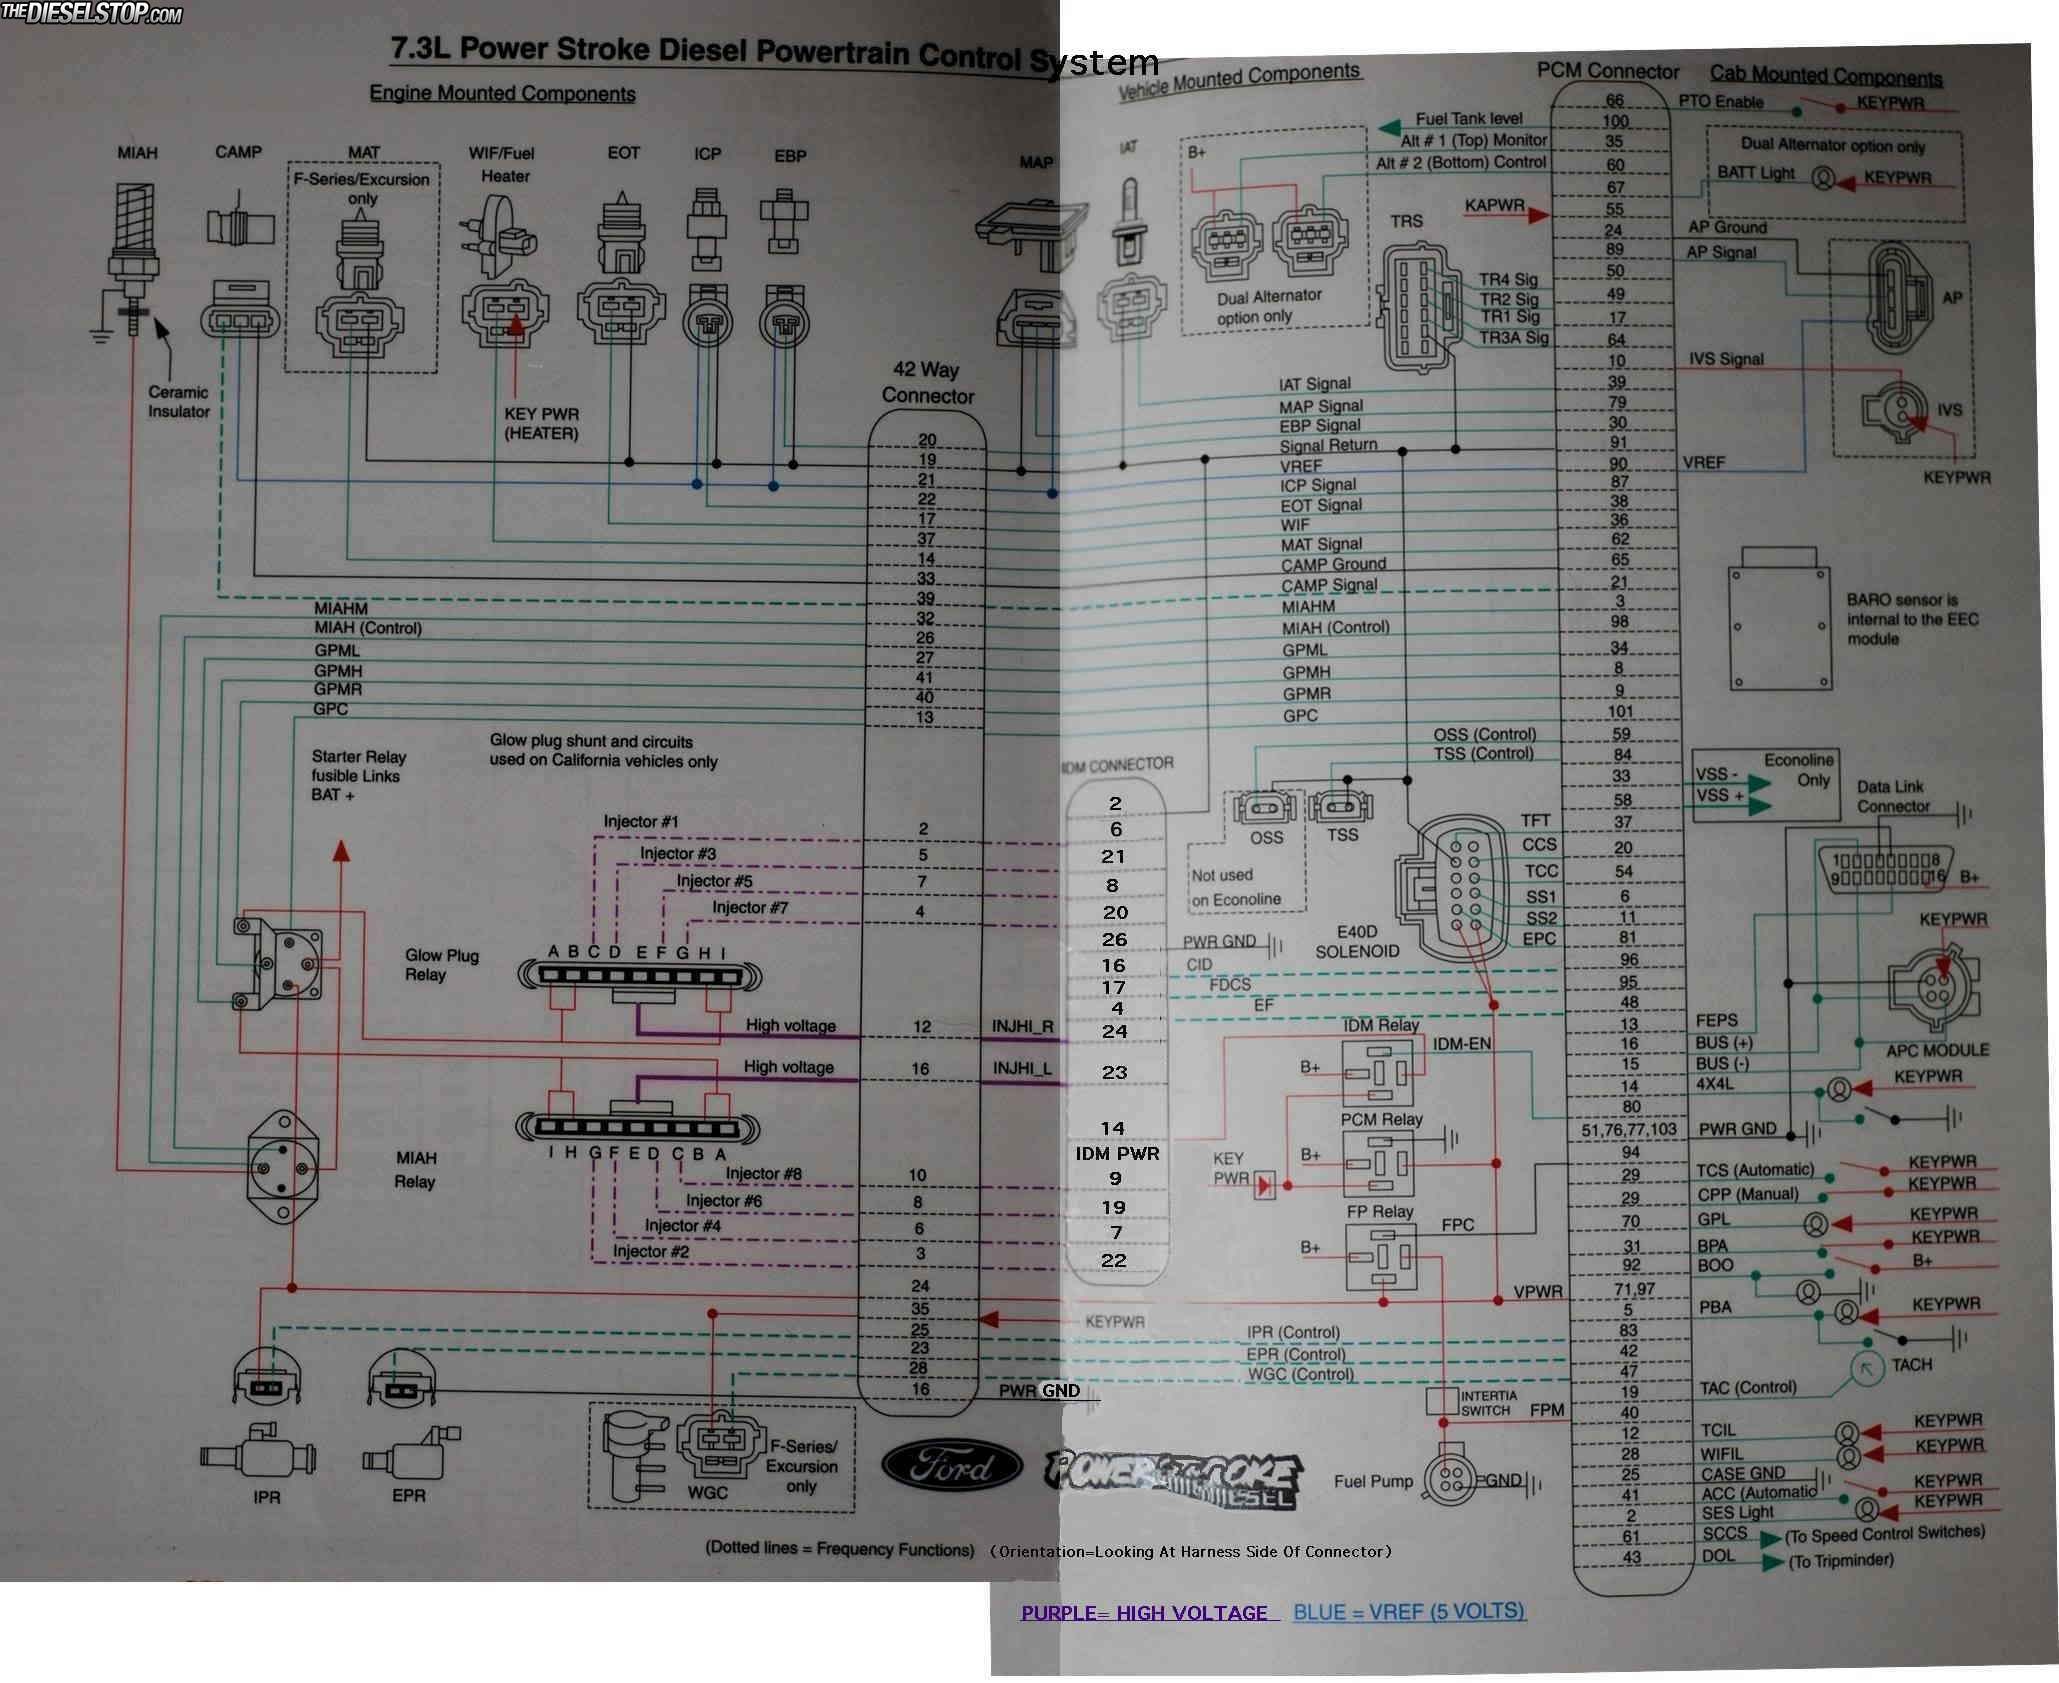 Wiring Diagram Glow Plug 7 3 2001 Ford F350 Another Diagrams Description Labview Block Diagramjpg Harness Pictures U2022 Rh Mapavick Co Uk 1999 Plugs Wire 2002